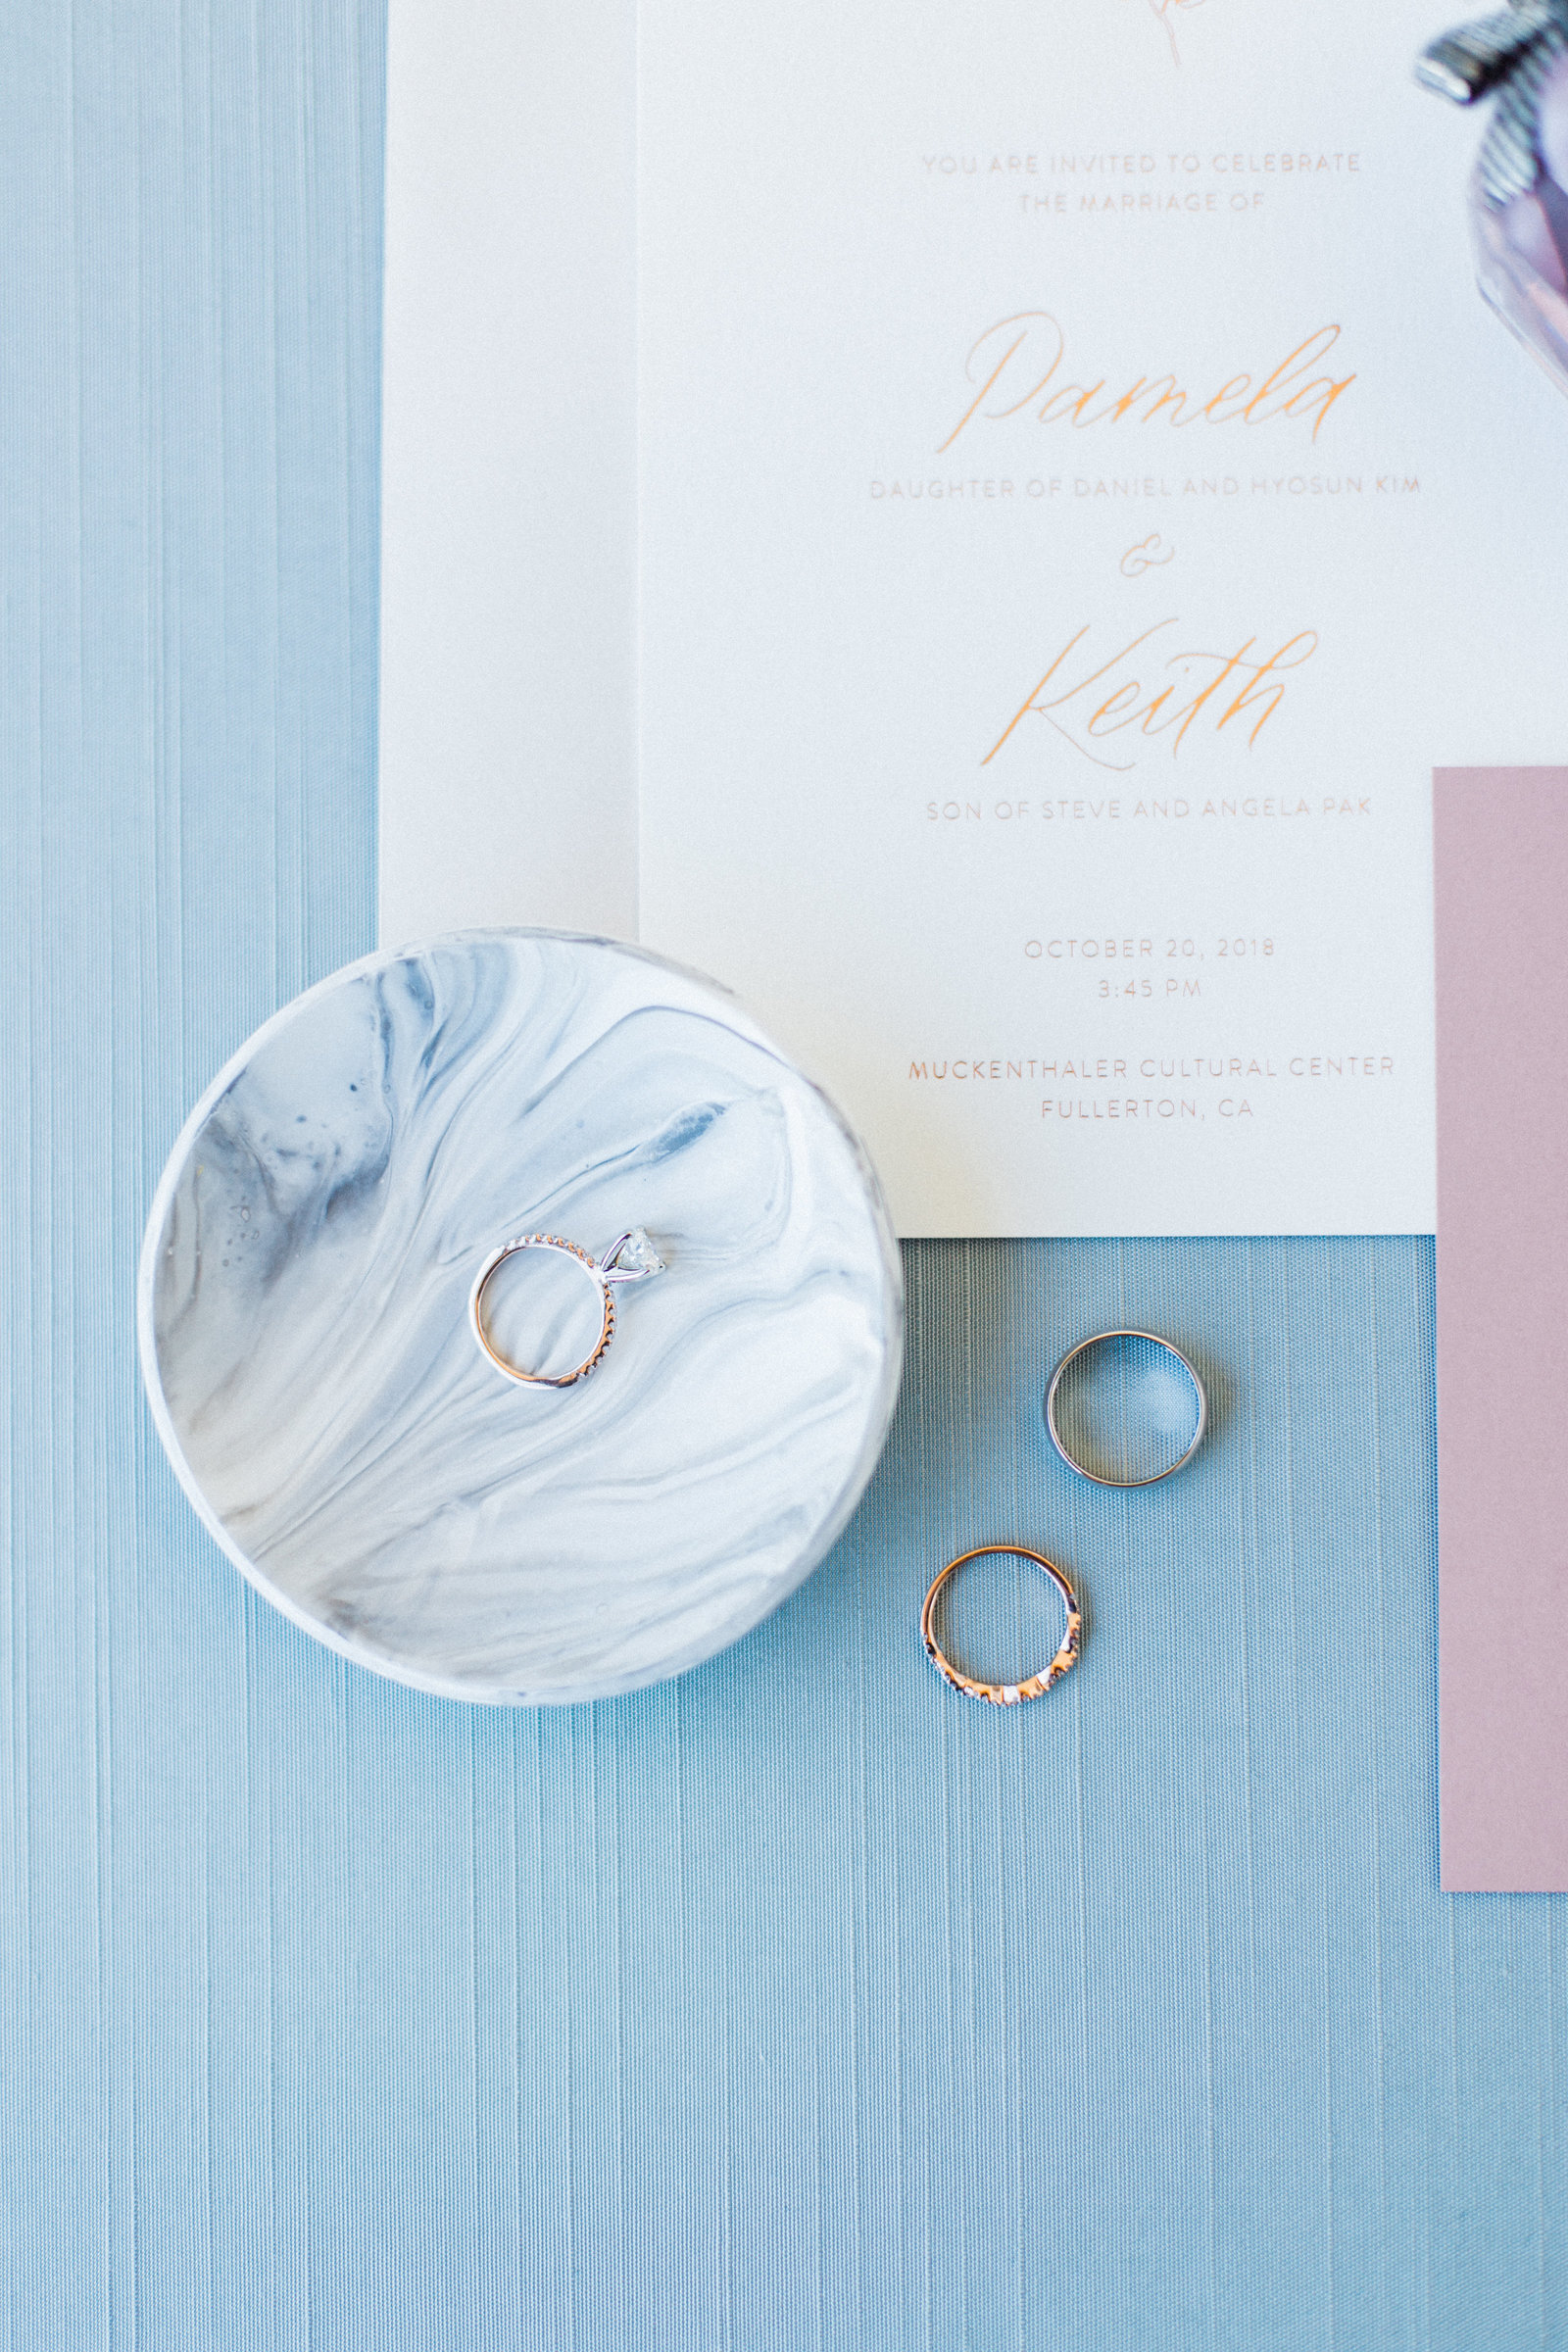 Orange County Wedding Invitations and Rings